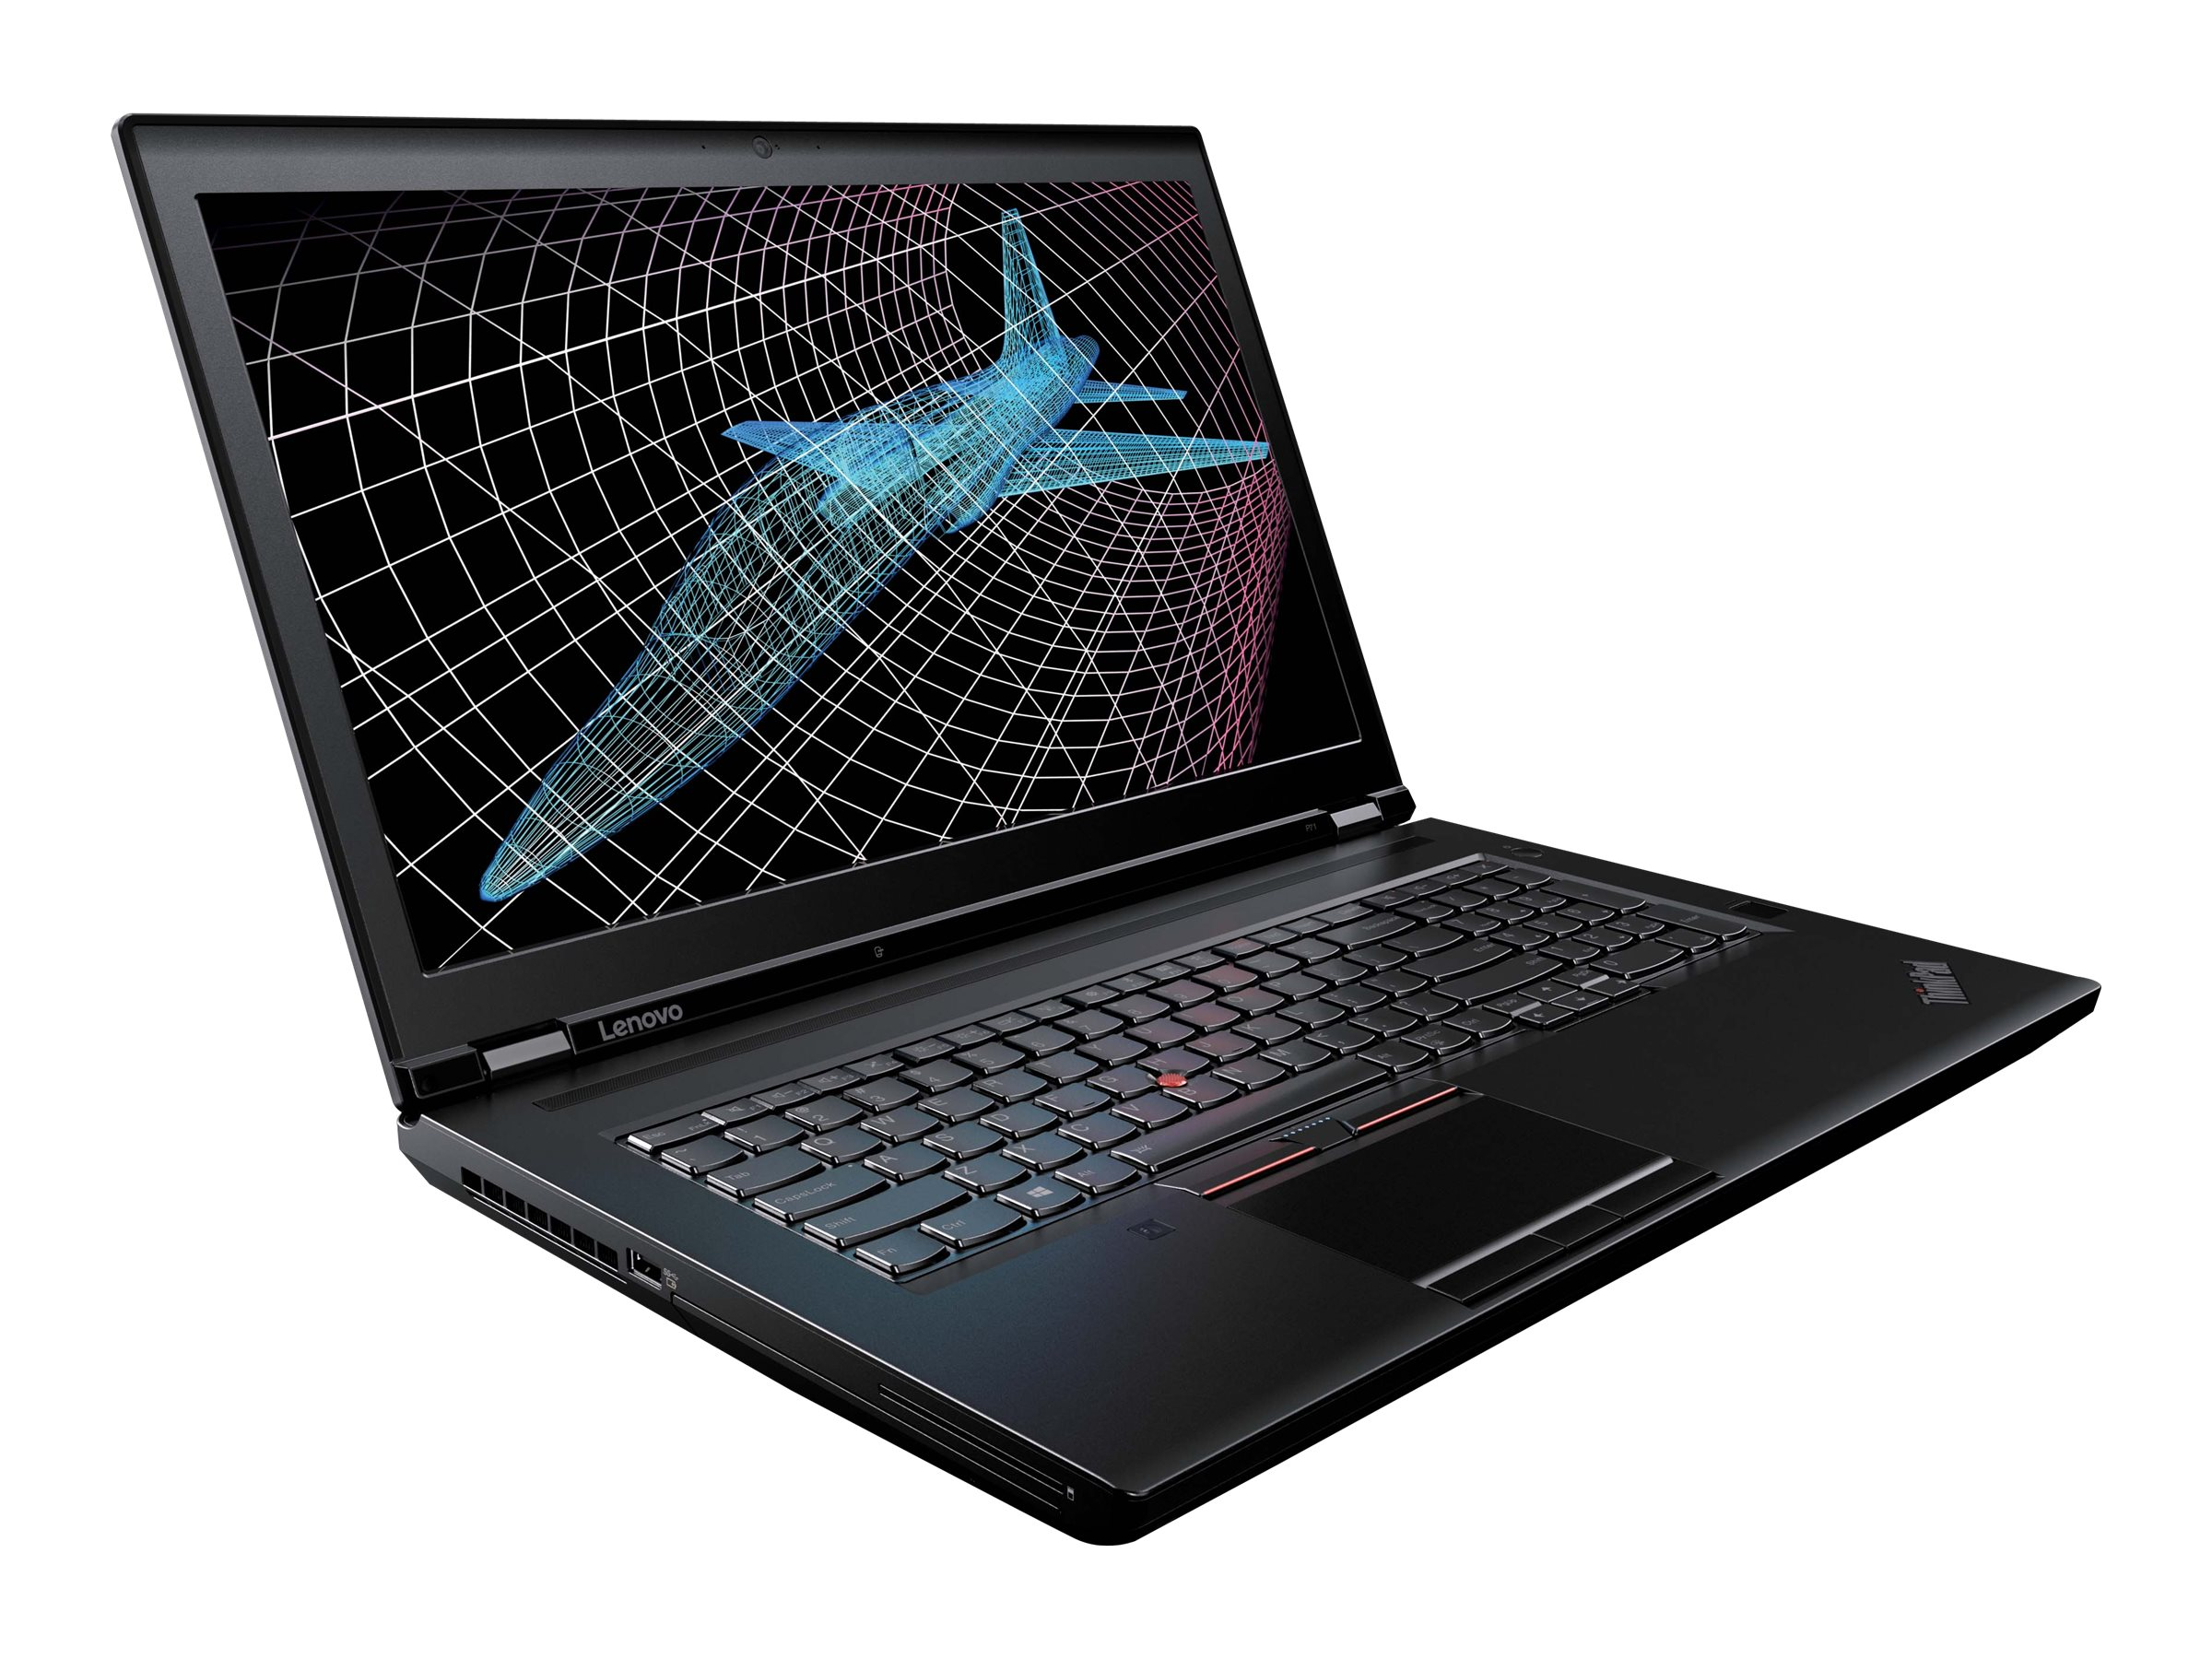 Lenovo TopSeller ThinkPad P71 Core i7-7820HQ 2.9GHz 8GB 500GB ac BT FR M620M 17.3 FHD W10P64, 20HK0017US